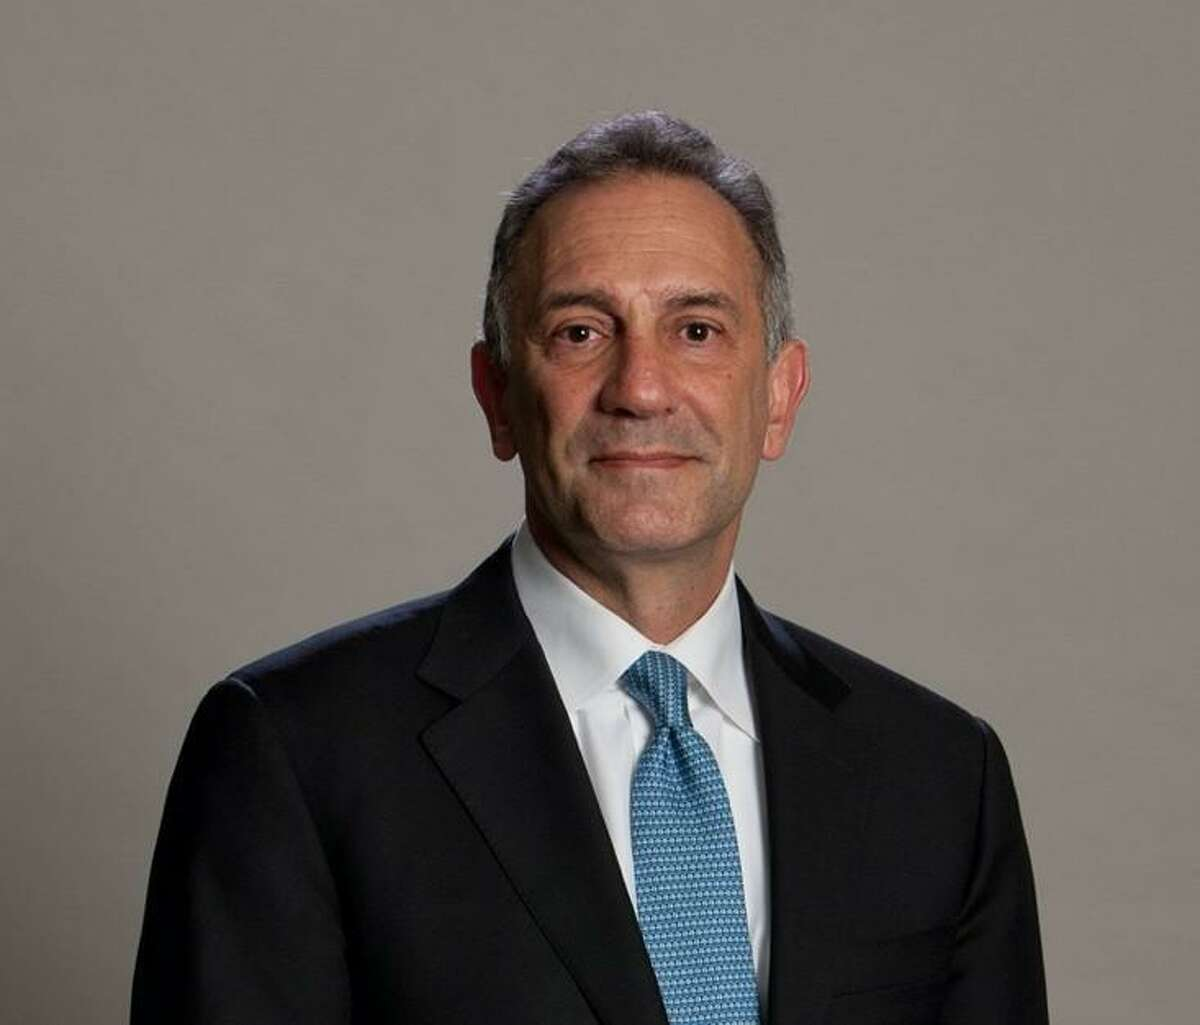 Shatterproof Founder and CEO Gary Mendell (pictured) is going to speak about